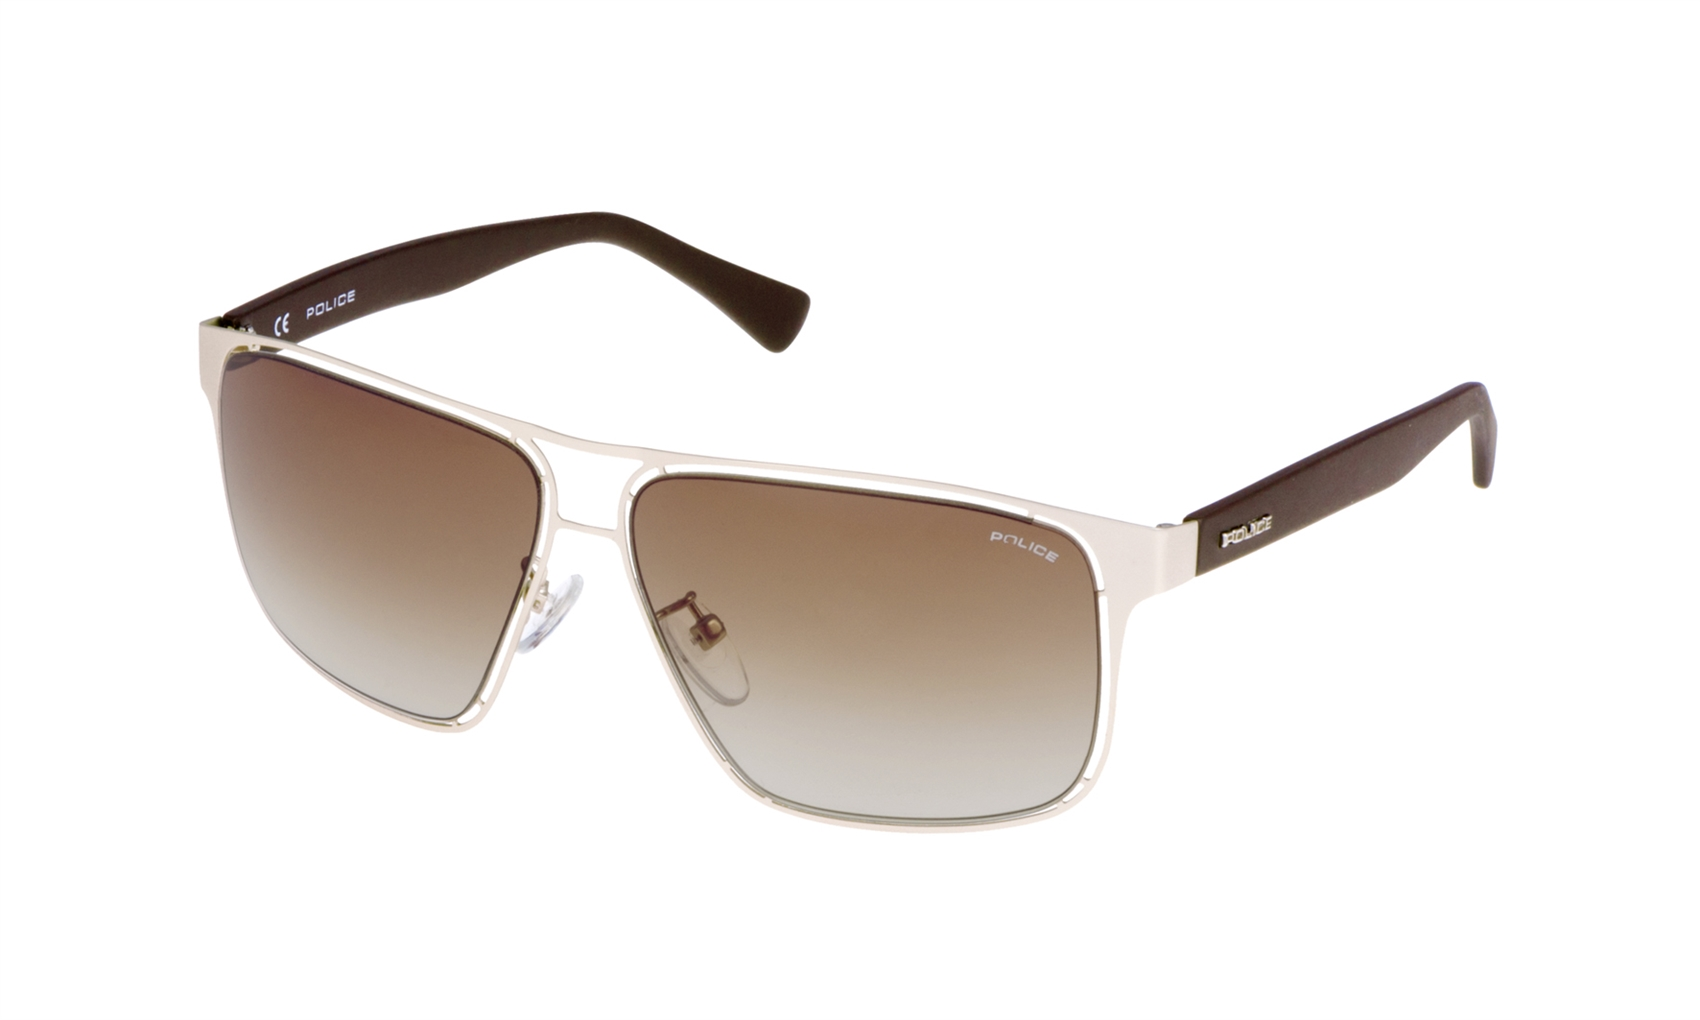 High-quality Oakley sunglasses aren't known for being cheap, but that doesn't mean you need to pay full price. Shopping the Oakley outlet store and taking advantage of Oakley coupons and promo codes could result in big discounts on your next purchase.